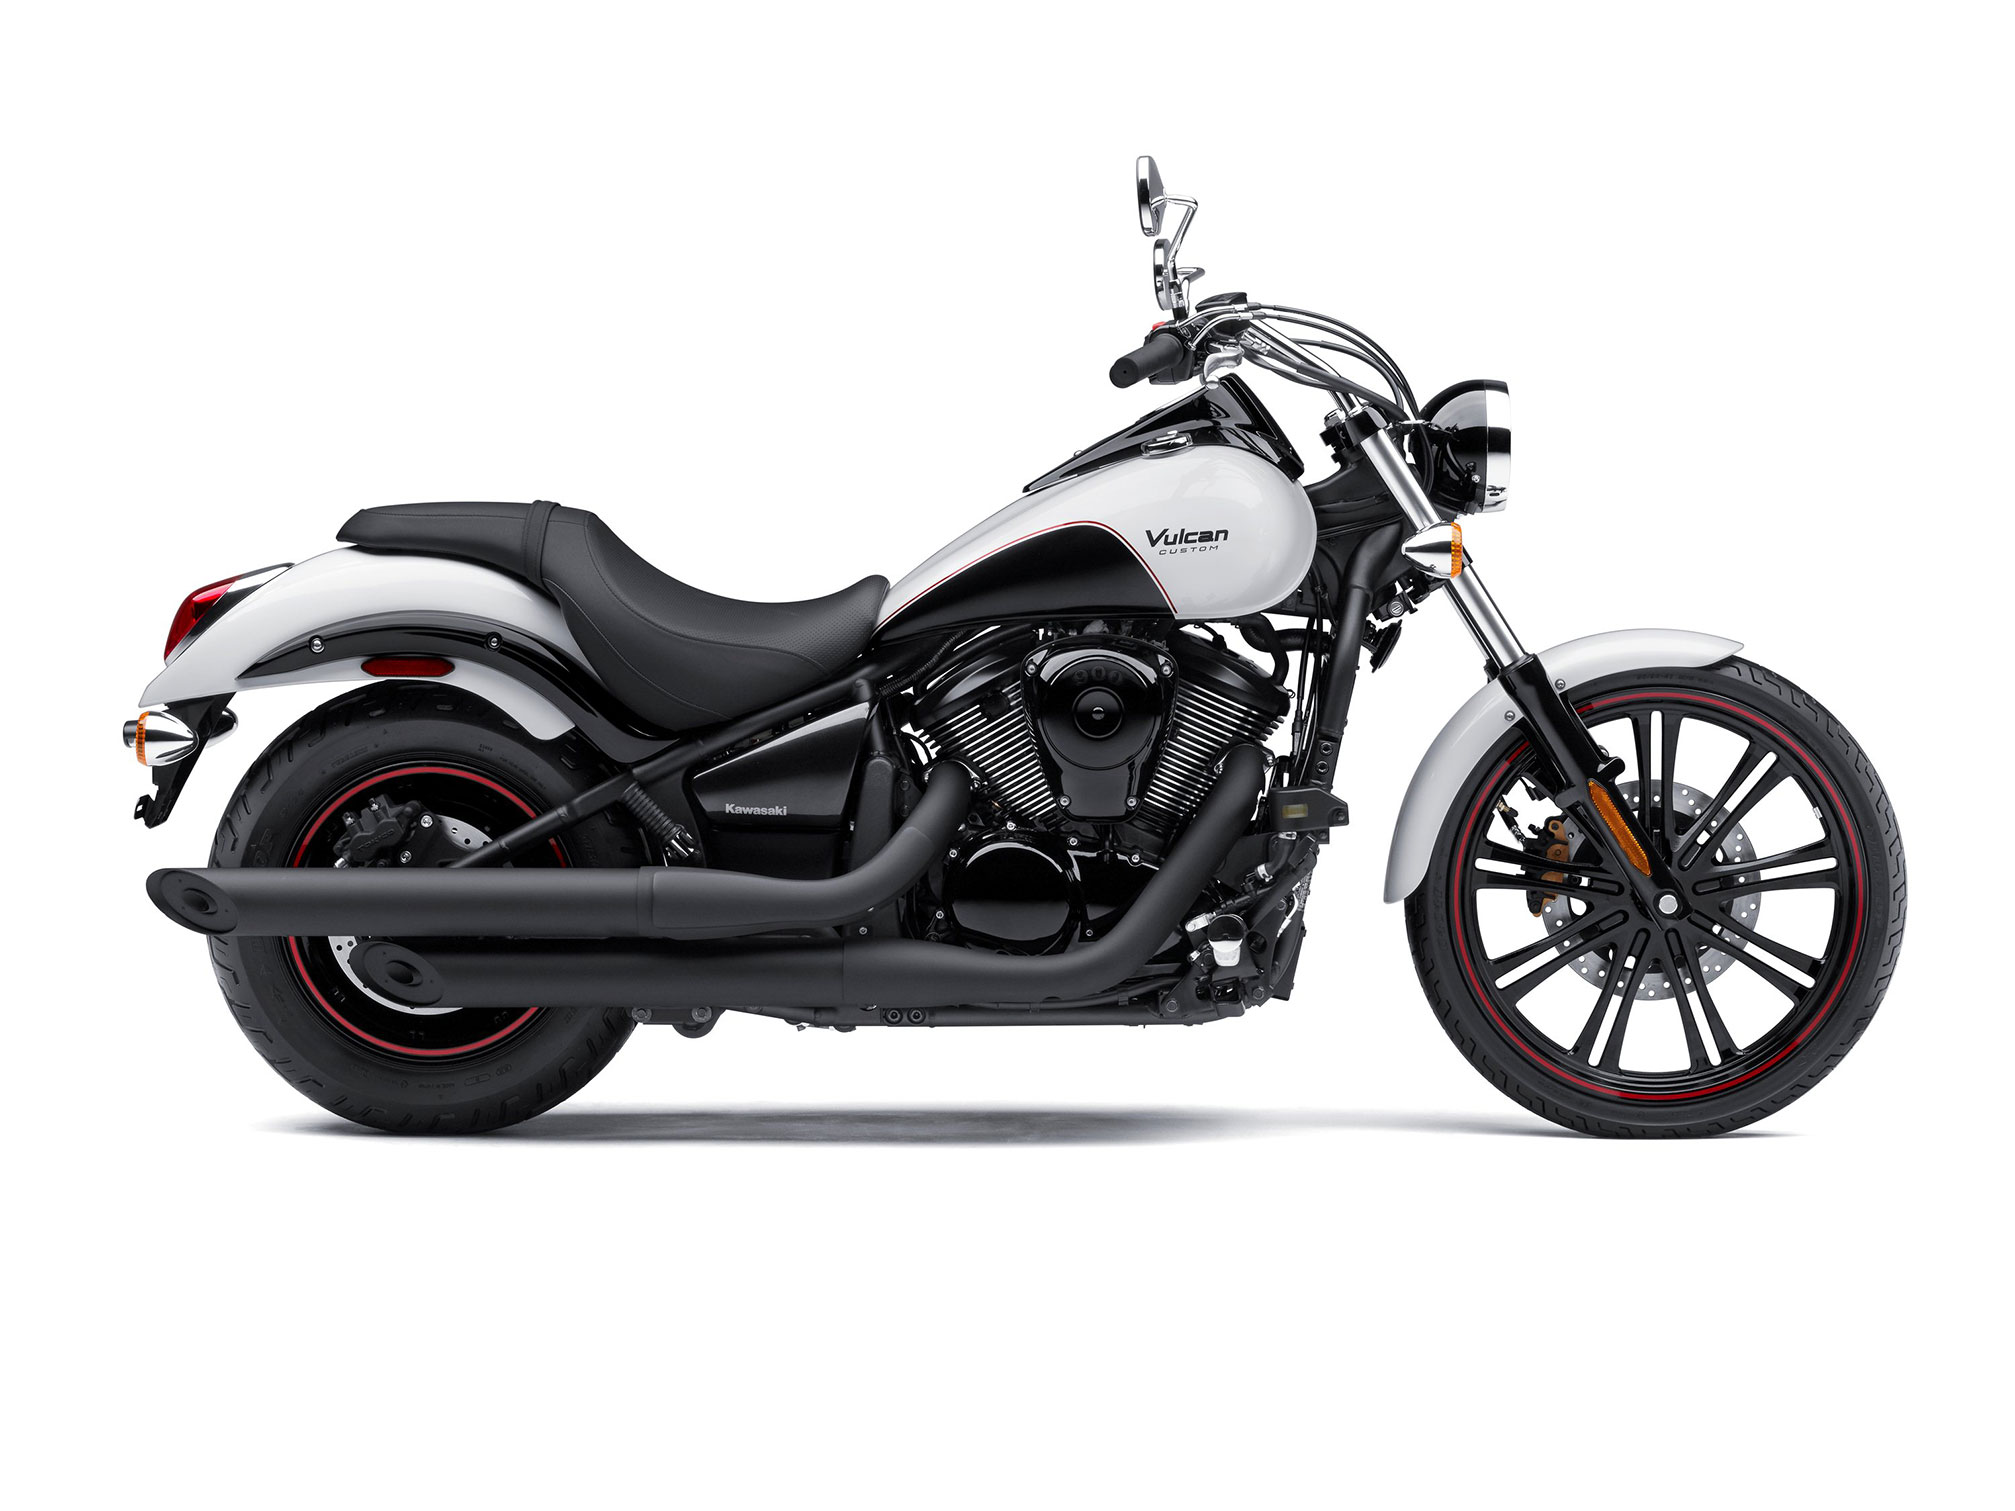 2016 kawasaki vulcan 900 custom review